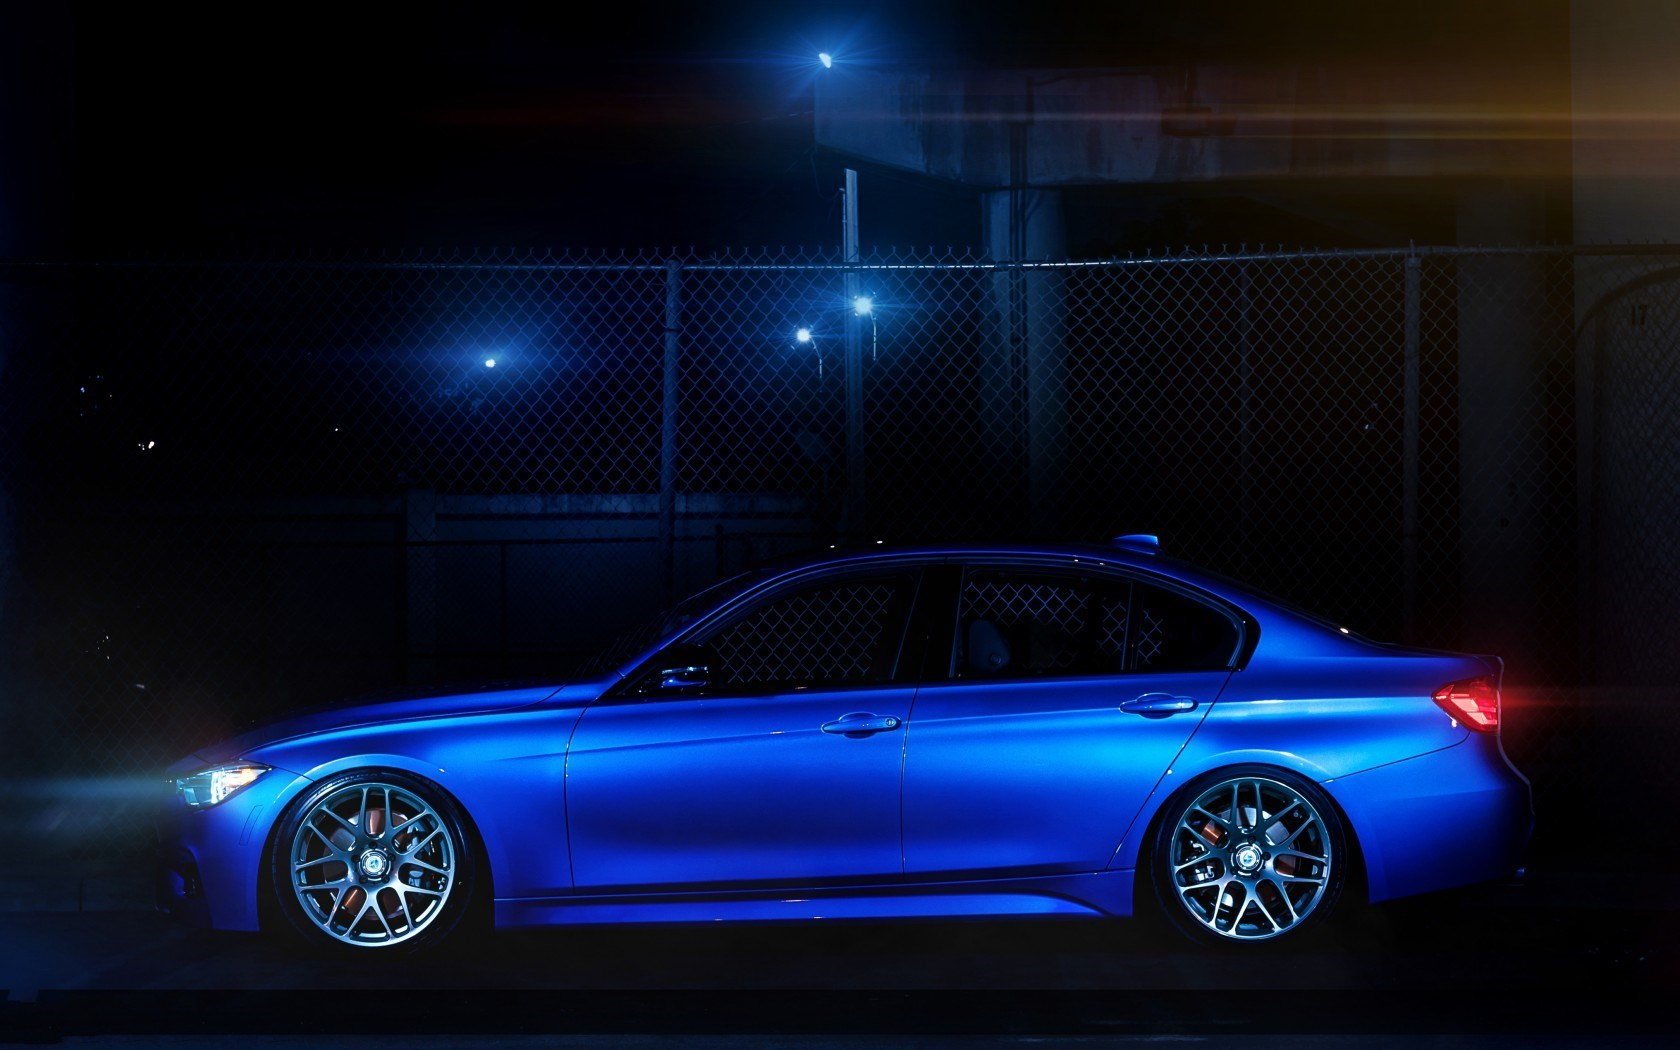 BMW 335i F30 Car Blue Side Night